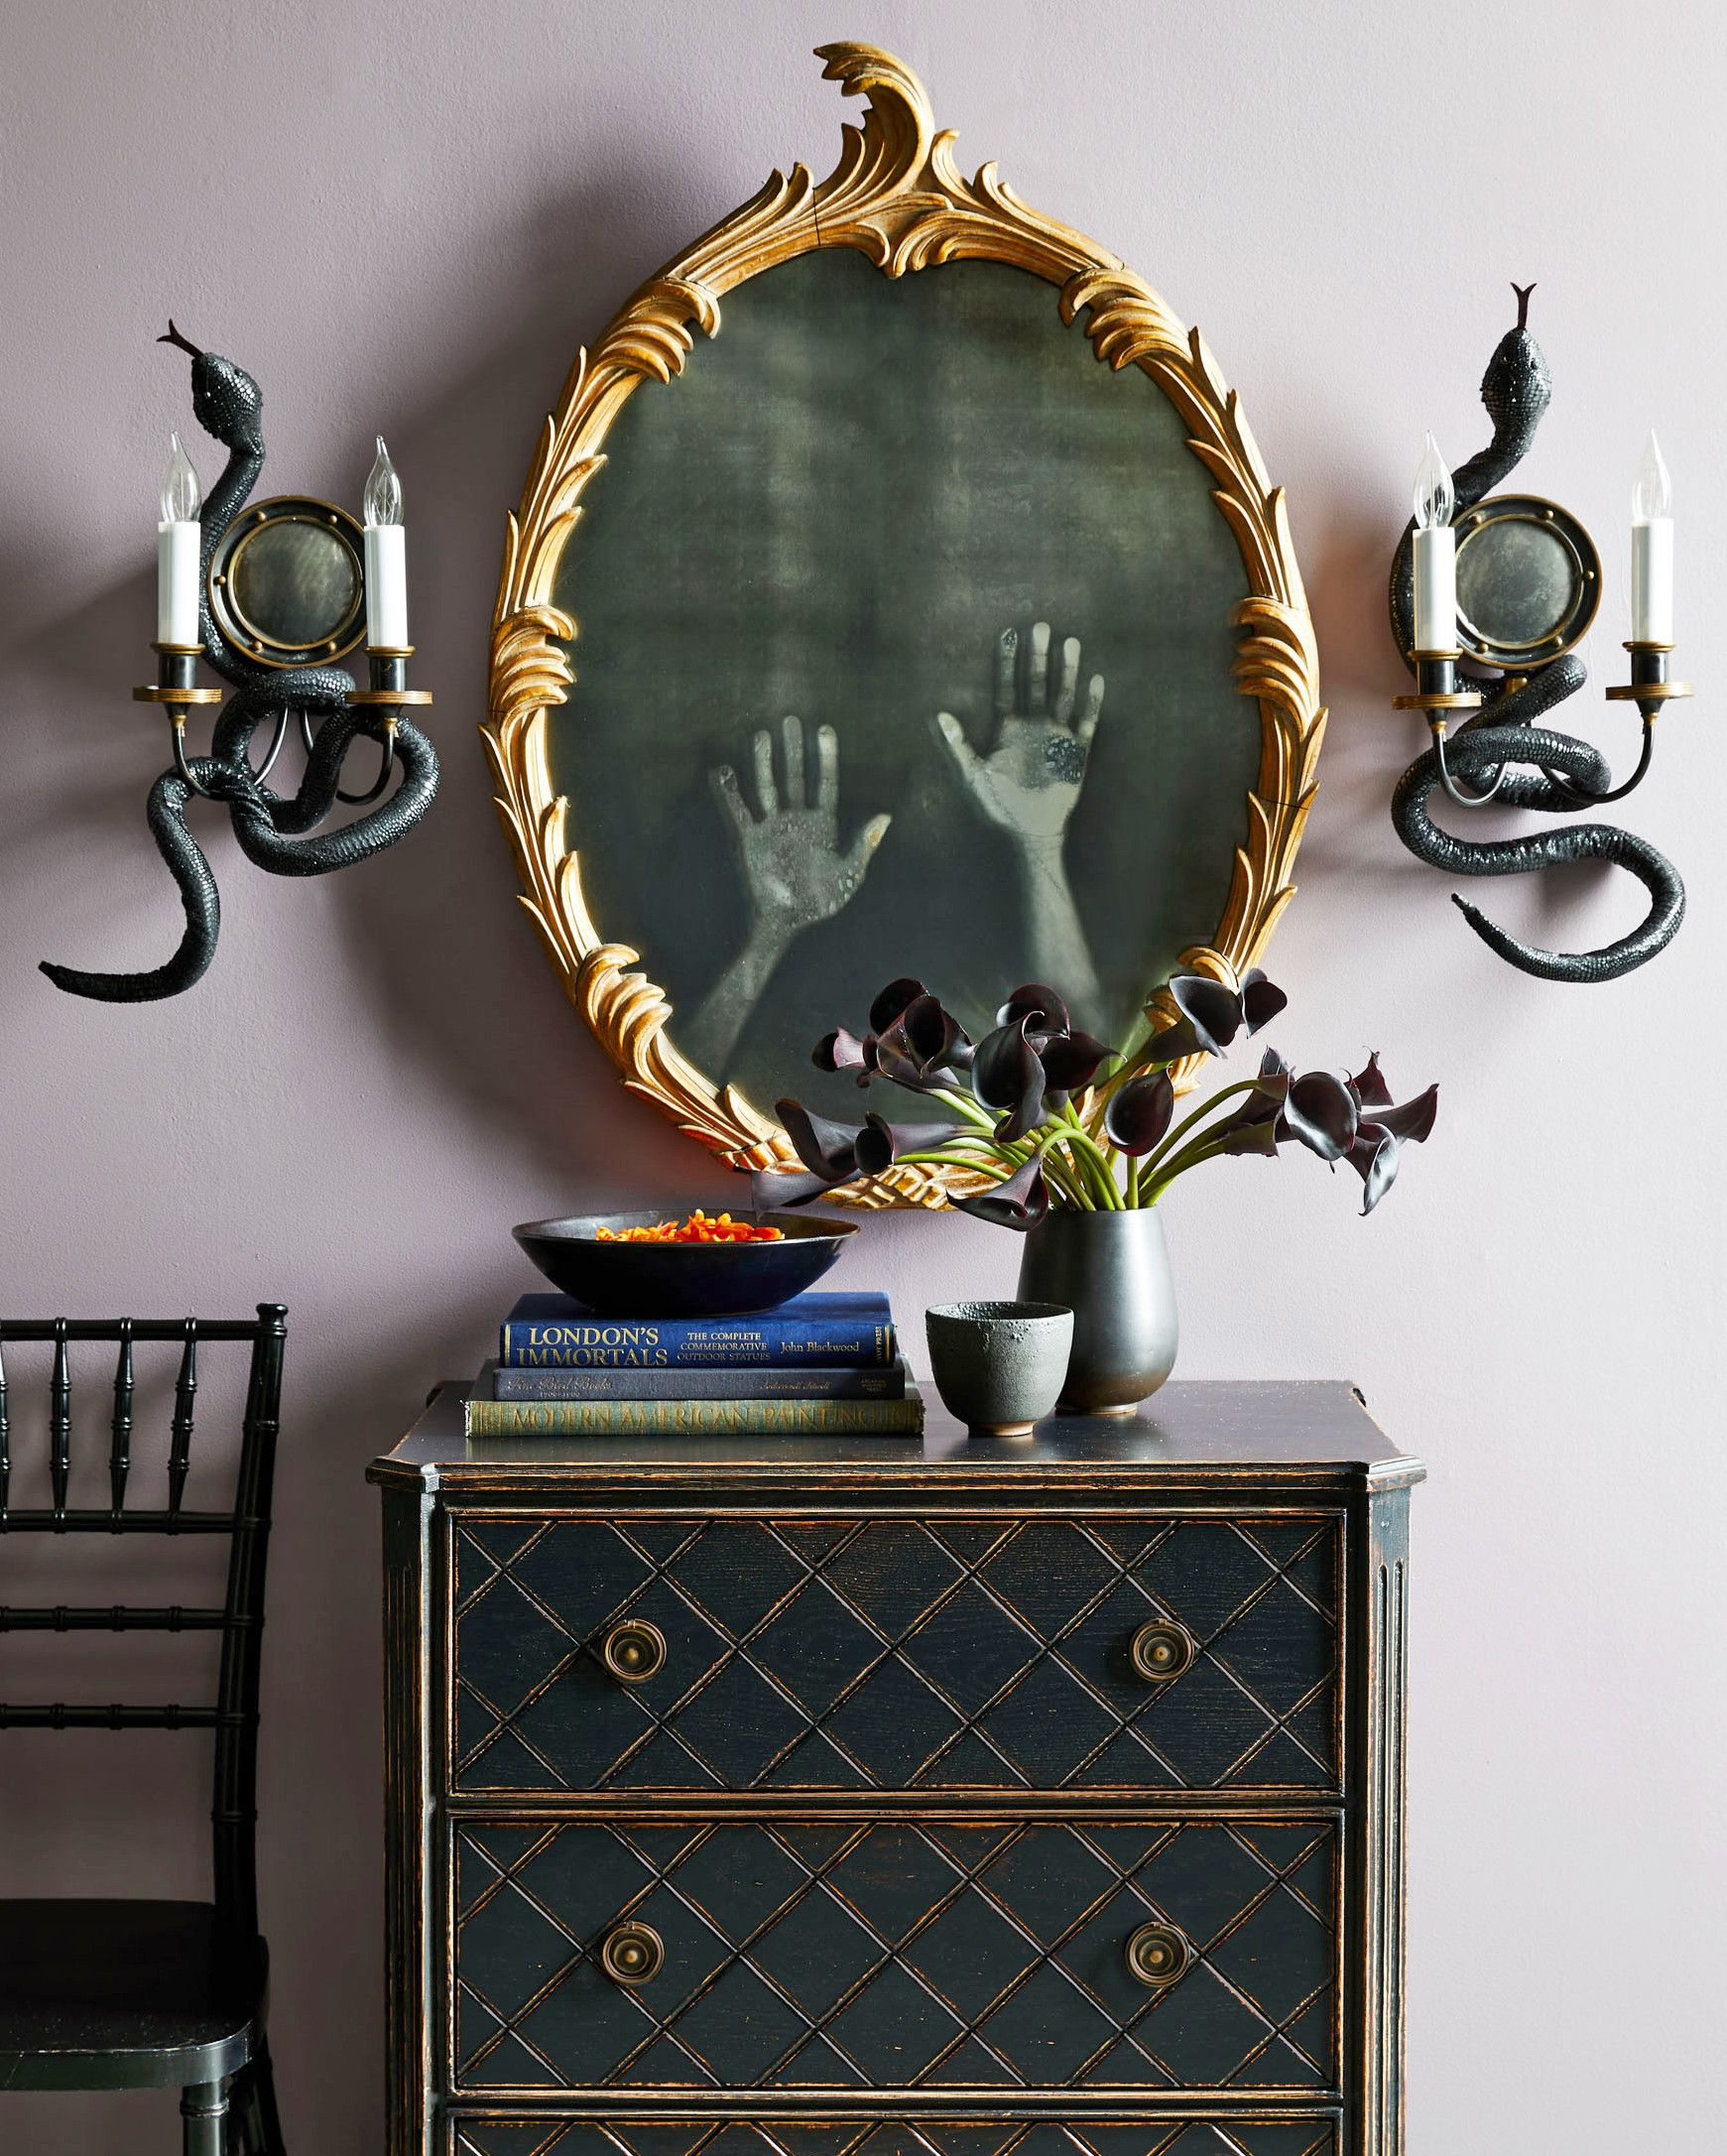 Haunted Mirror With Ghost Hands